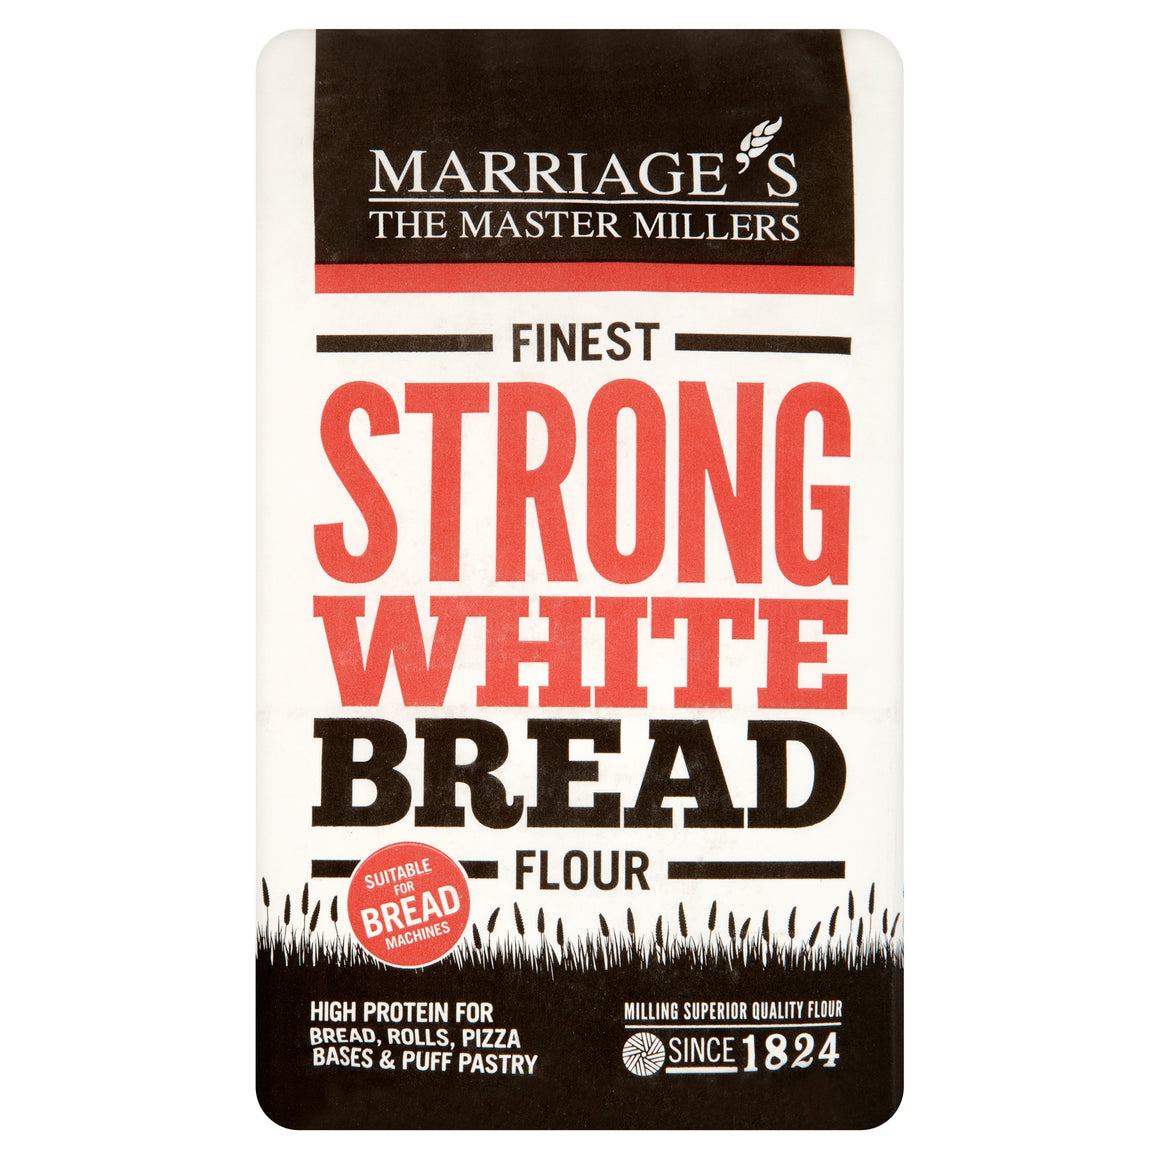 Marriage's Strong White Bread Flour